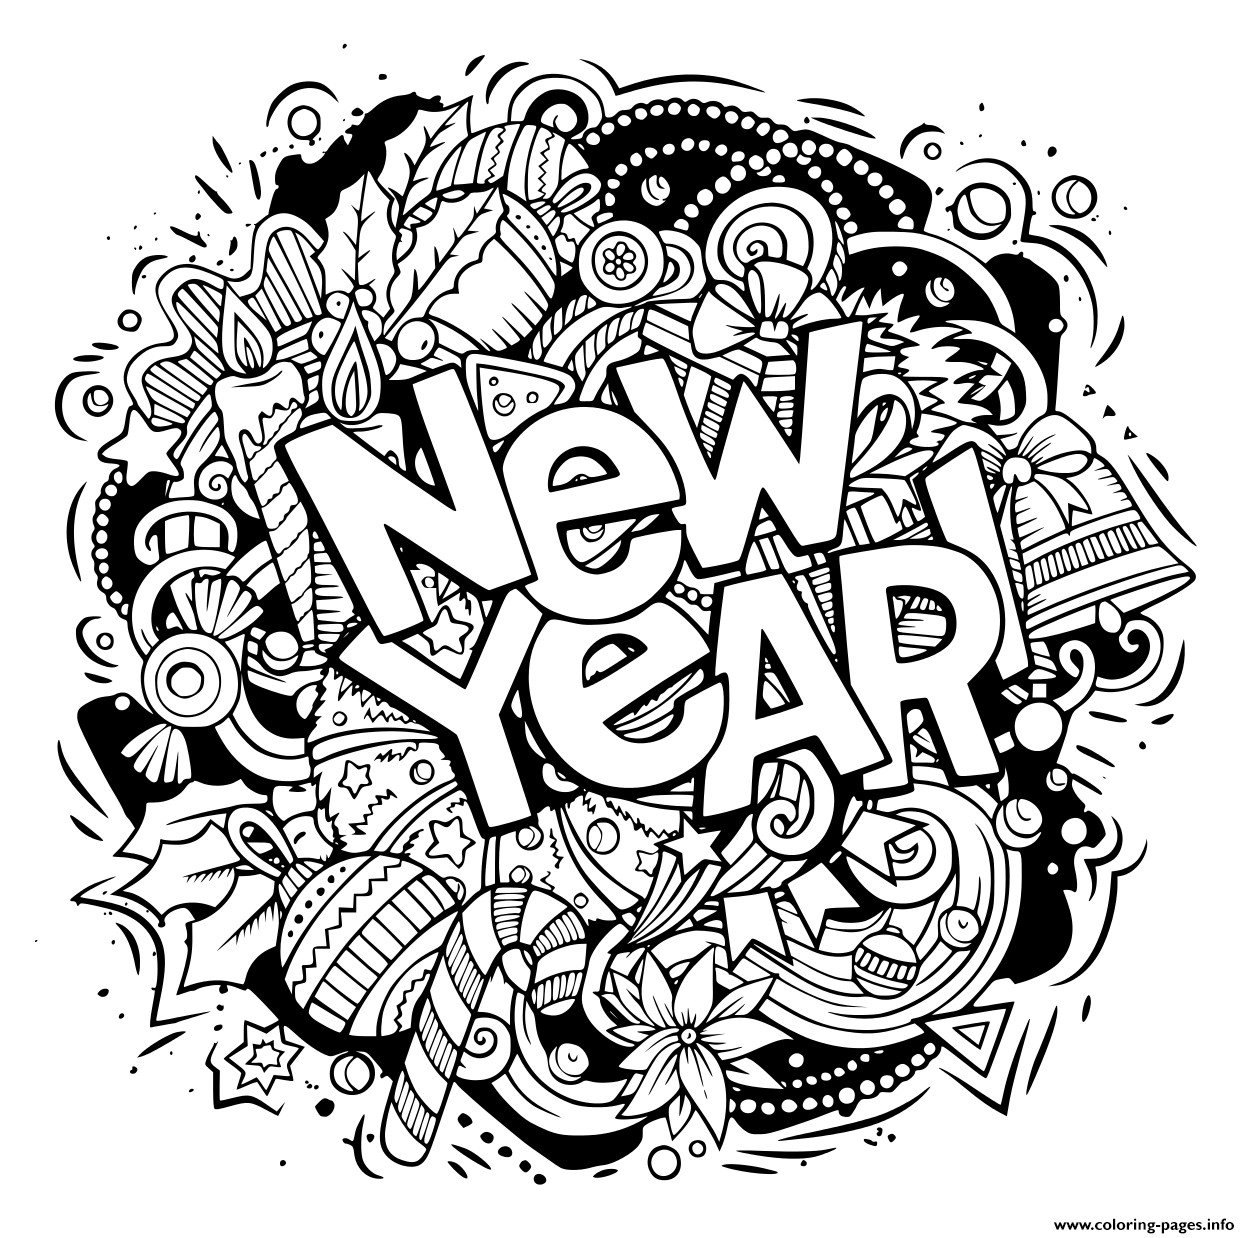 coloring new year new year doodles objects and elements coloring pages printable year new coloring